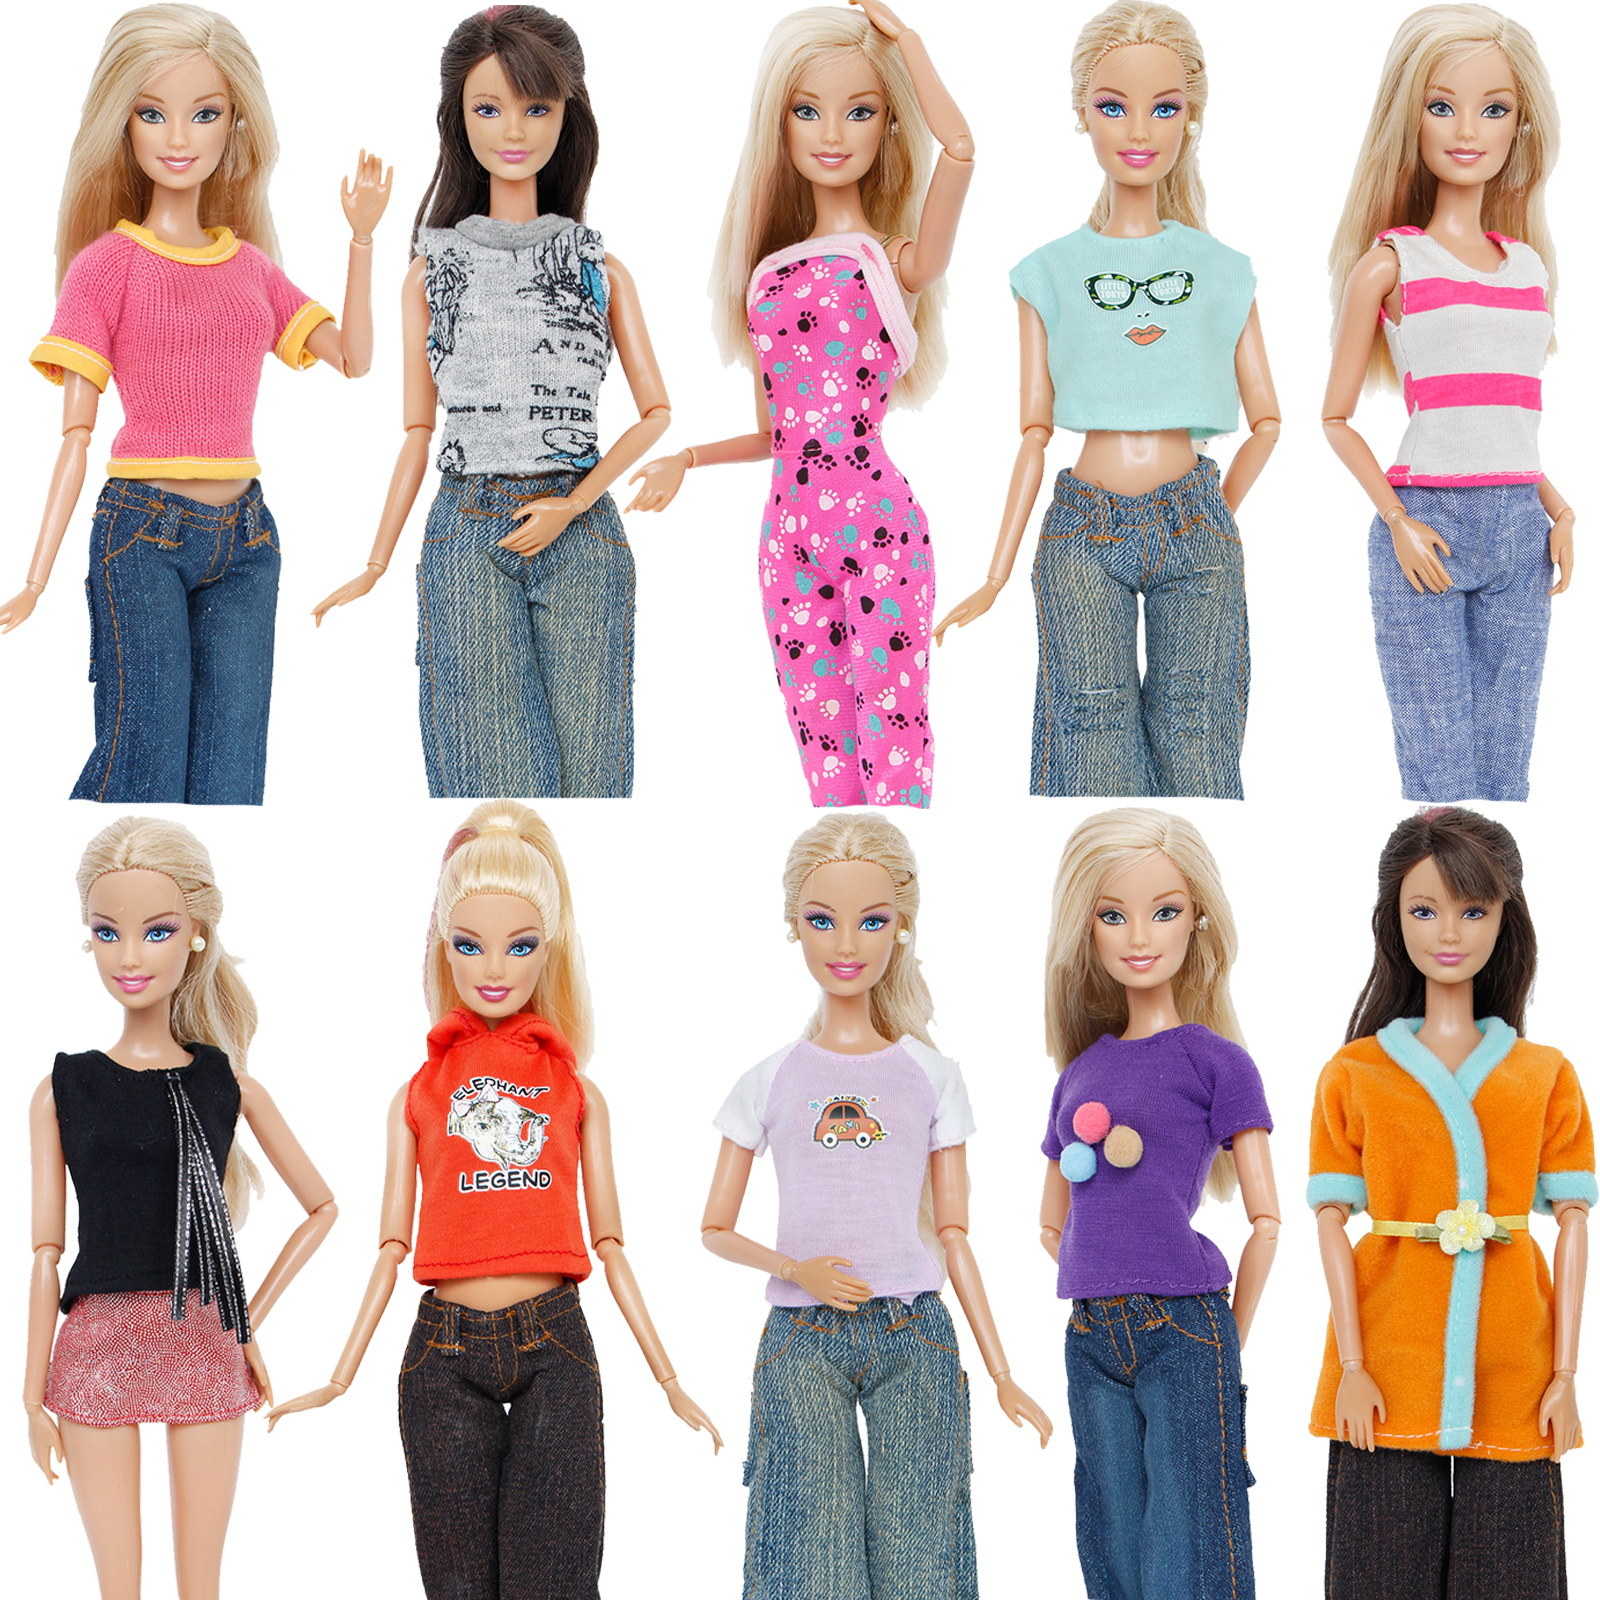 1 Pcs High Quality Outfit Fashion Daily Wear Blouse T-Shirt Sexy Jumpsuit Pants Jeans Clothes For Barbie Doll Accessores